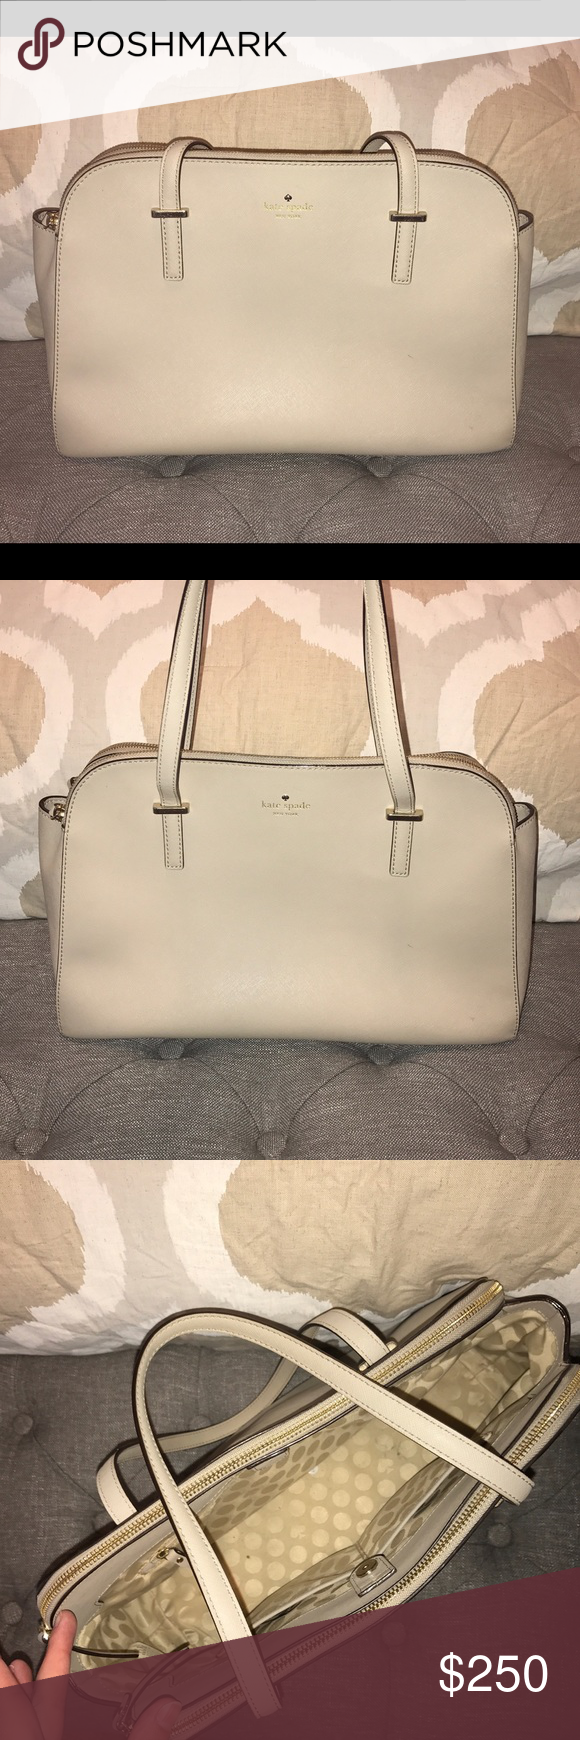 Kate spade cedar street Elissa tote! Great condition! Has some minor marks on the interior not noticeable when zipped but no flaws on the outside! This is a discontinued style! kate spade Bags Totes